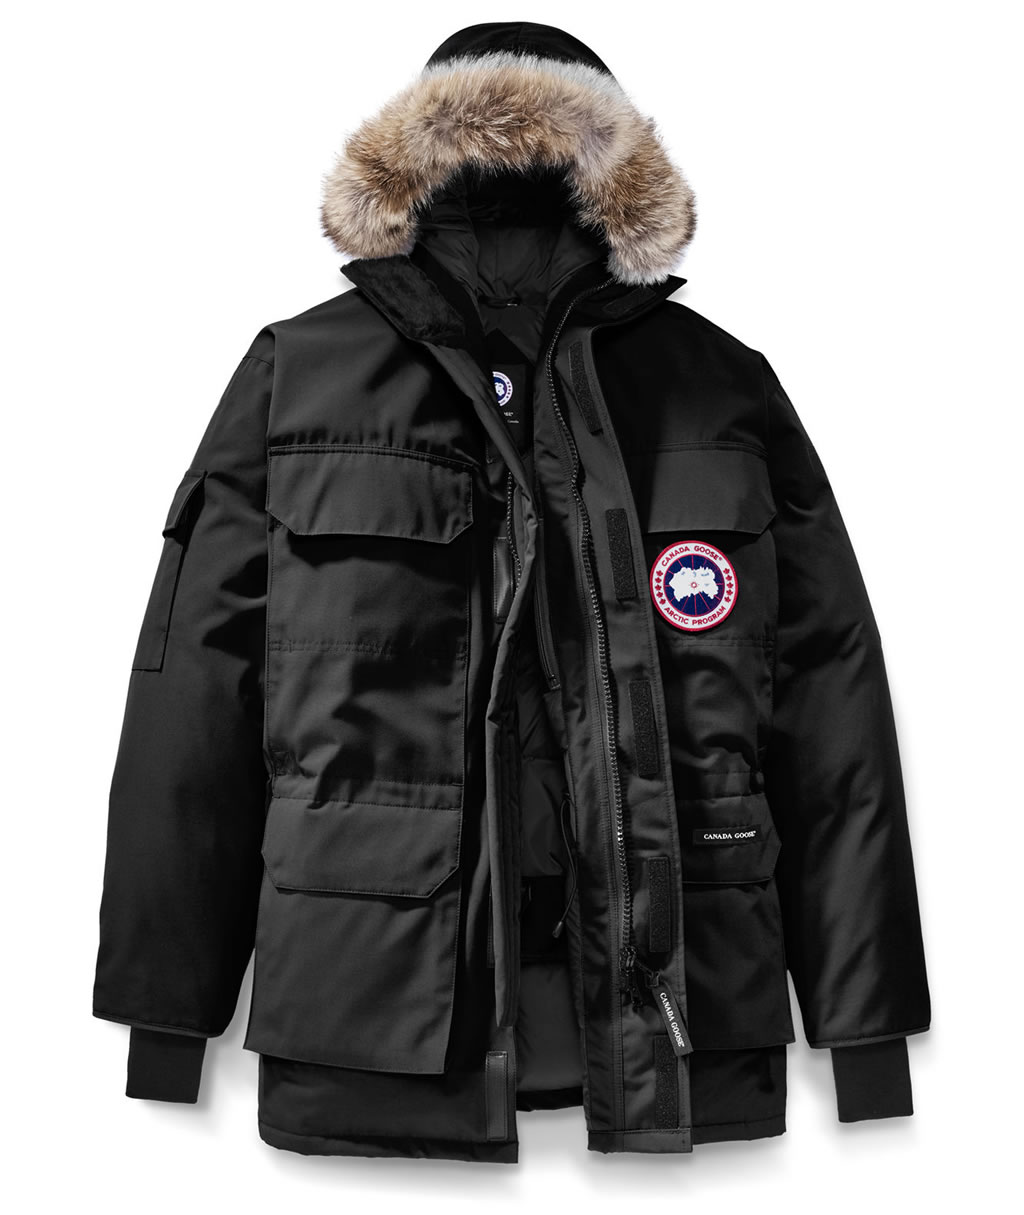 Canada Goose Expedition Parka for Men